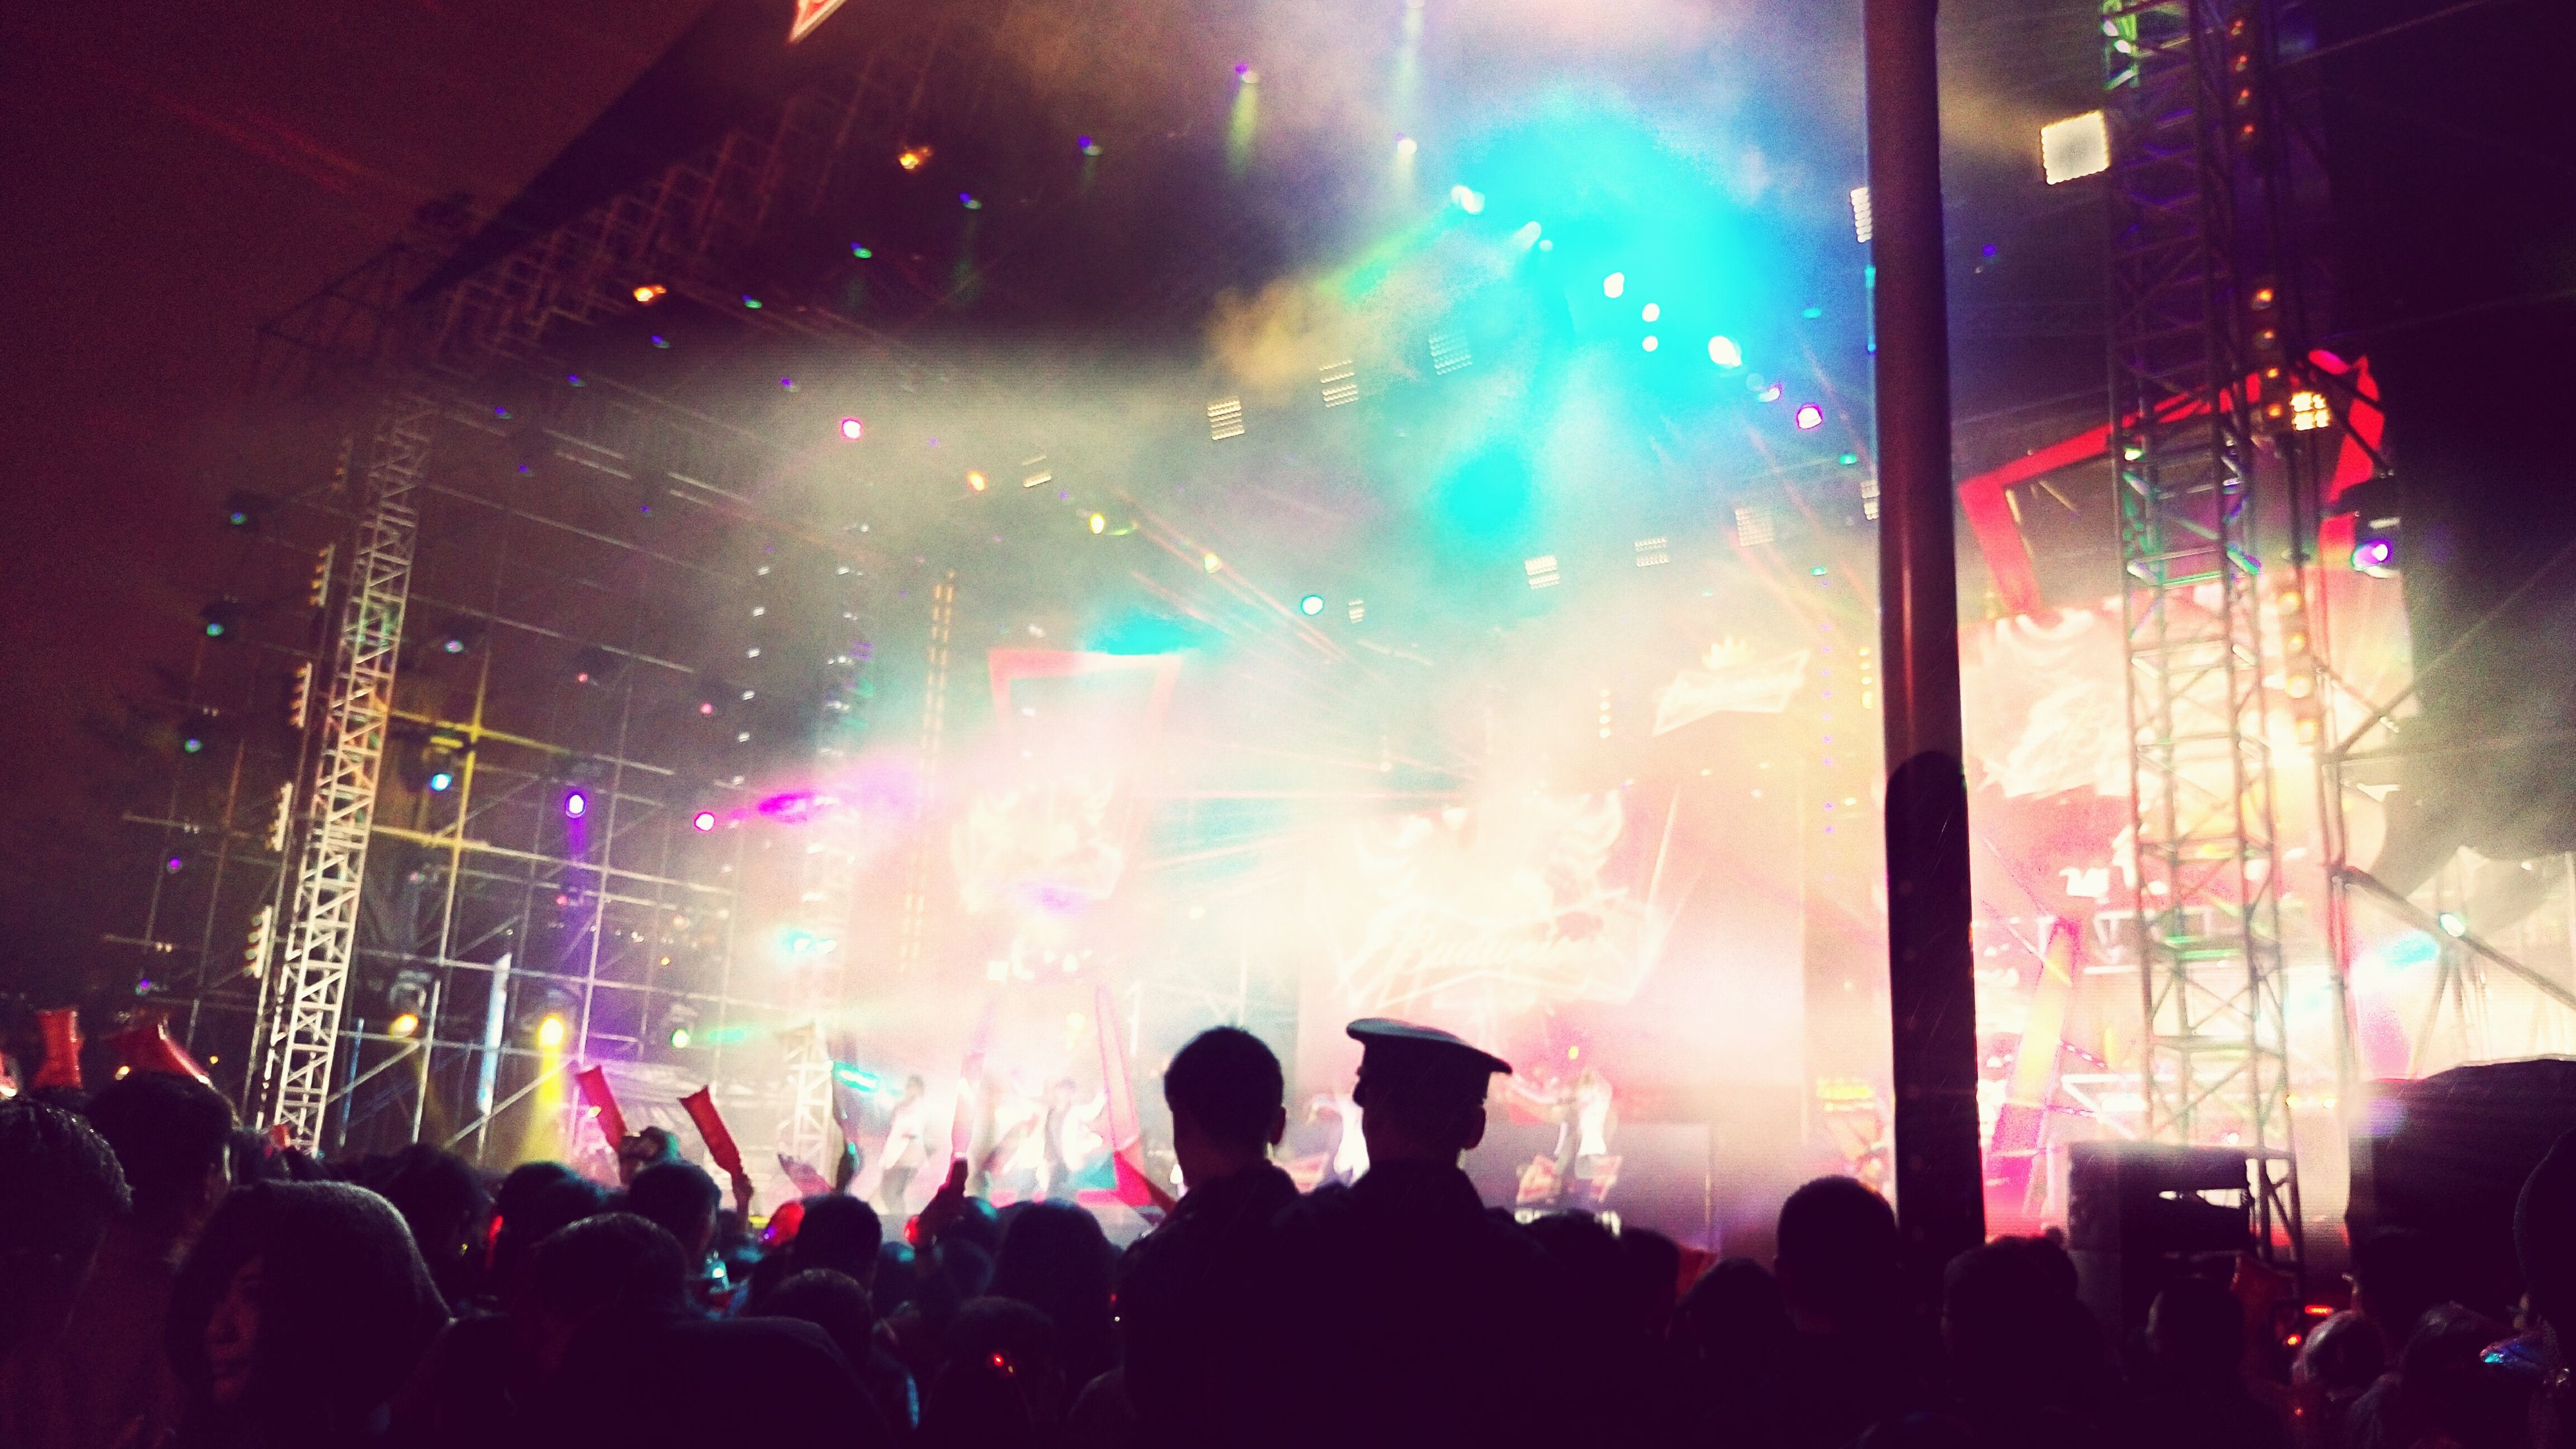 large group of people, crowd, illuminated, person, lifestyles, nightlife, music, enjoyment, arts culture and entertainment, event, men, night, leisure activity, performance, fun, popular music concert, music festival, stage light